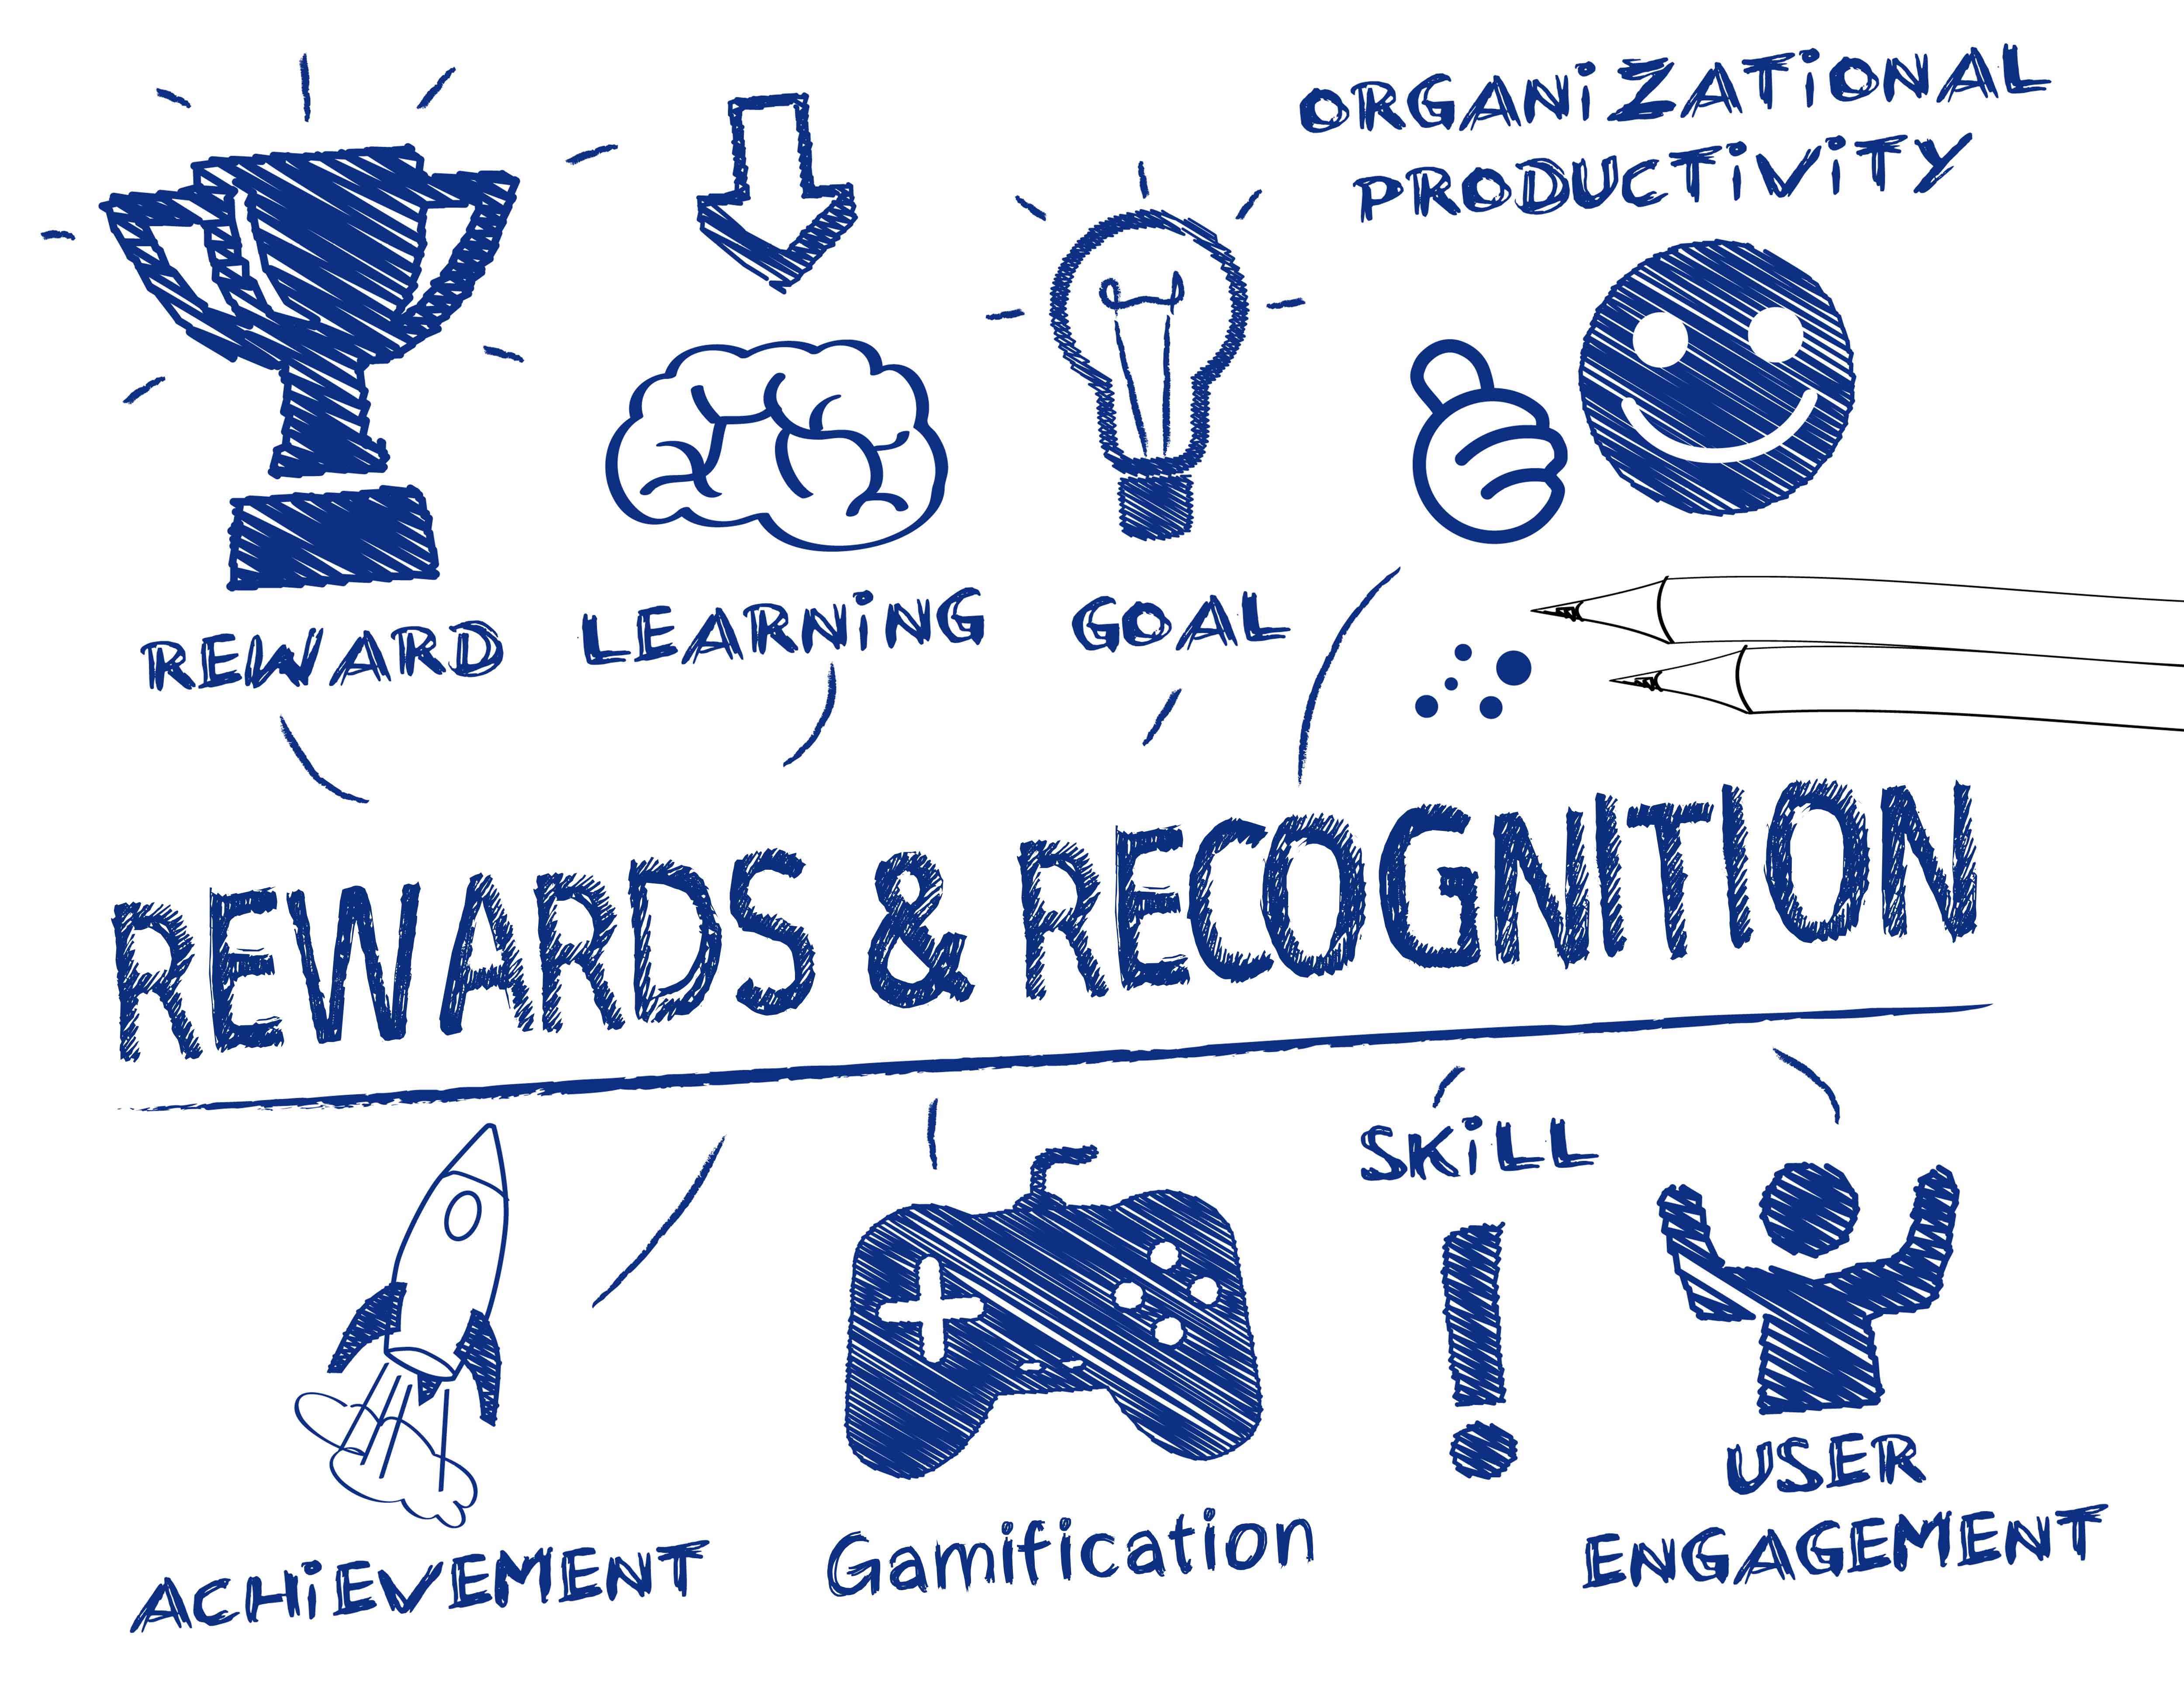 Driving Organizational Culture Through Rewards & Recognition